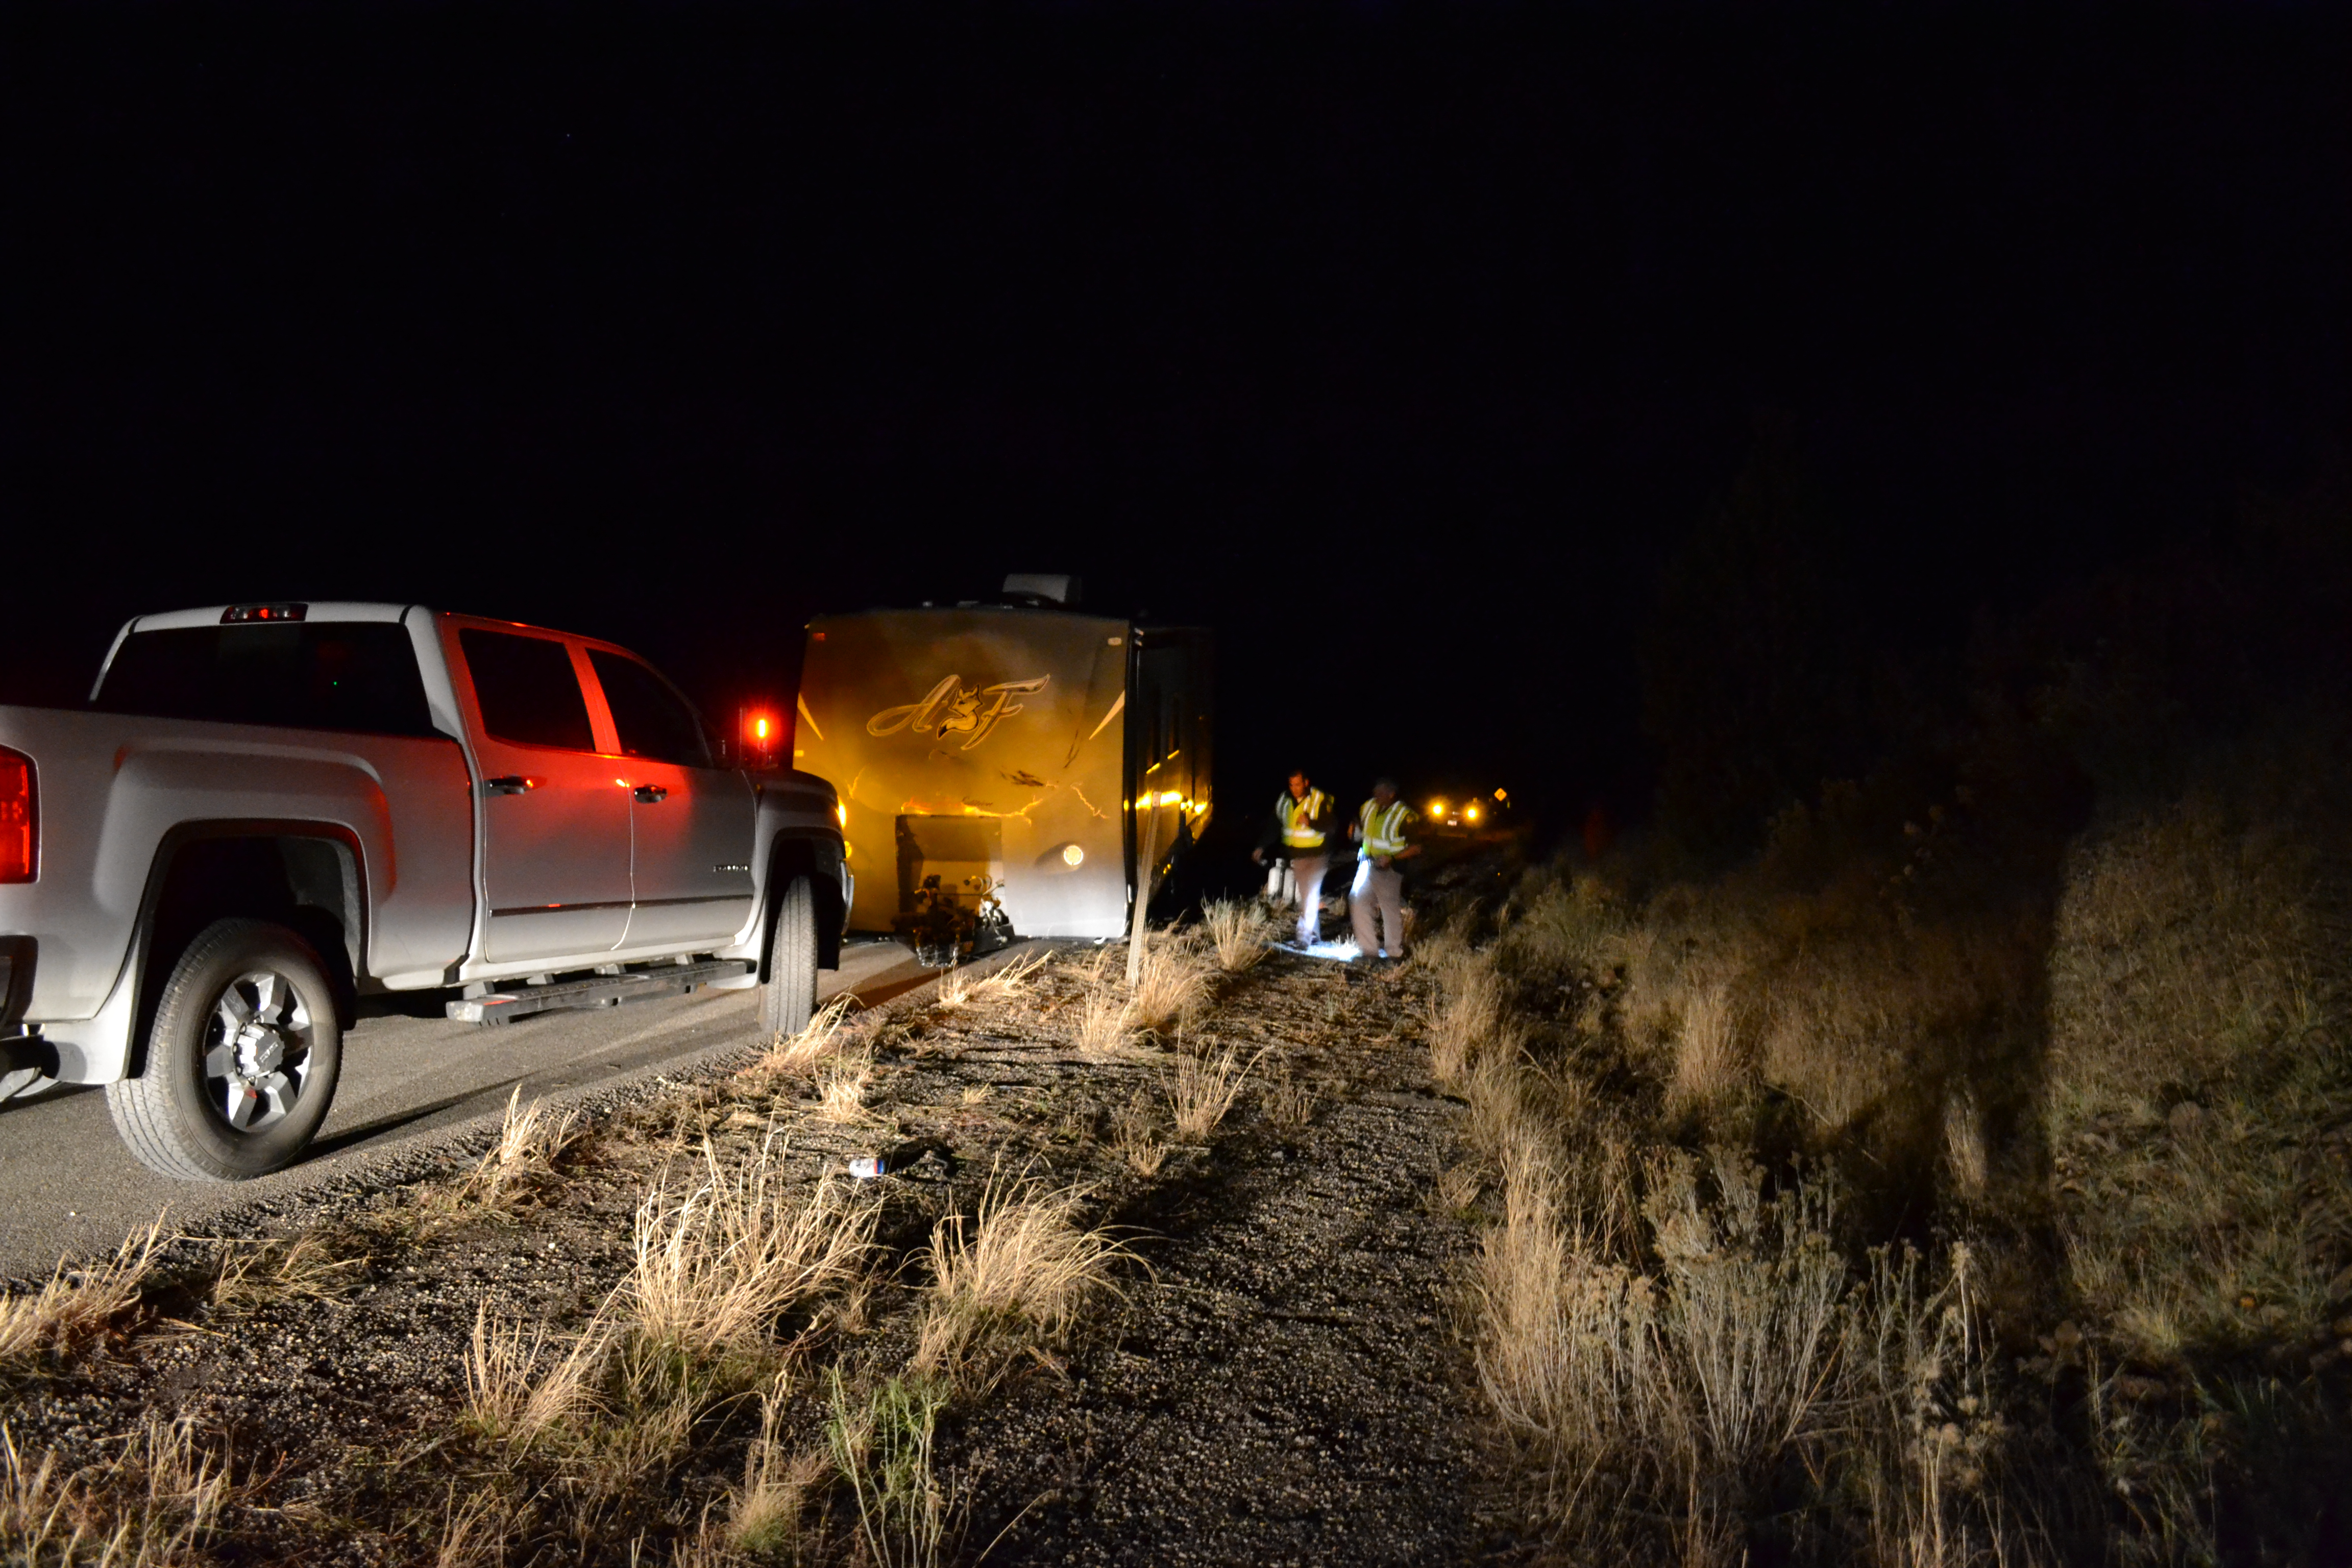 L-R: Utah Highway Patrol Troopers Joe Pastor and Mike Murphey examine the scene of a trailer rollover on Interstate 15, Washington County, Utah, Nov. 26, 2016 | Photo by Joseph Witham, St. George News